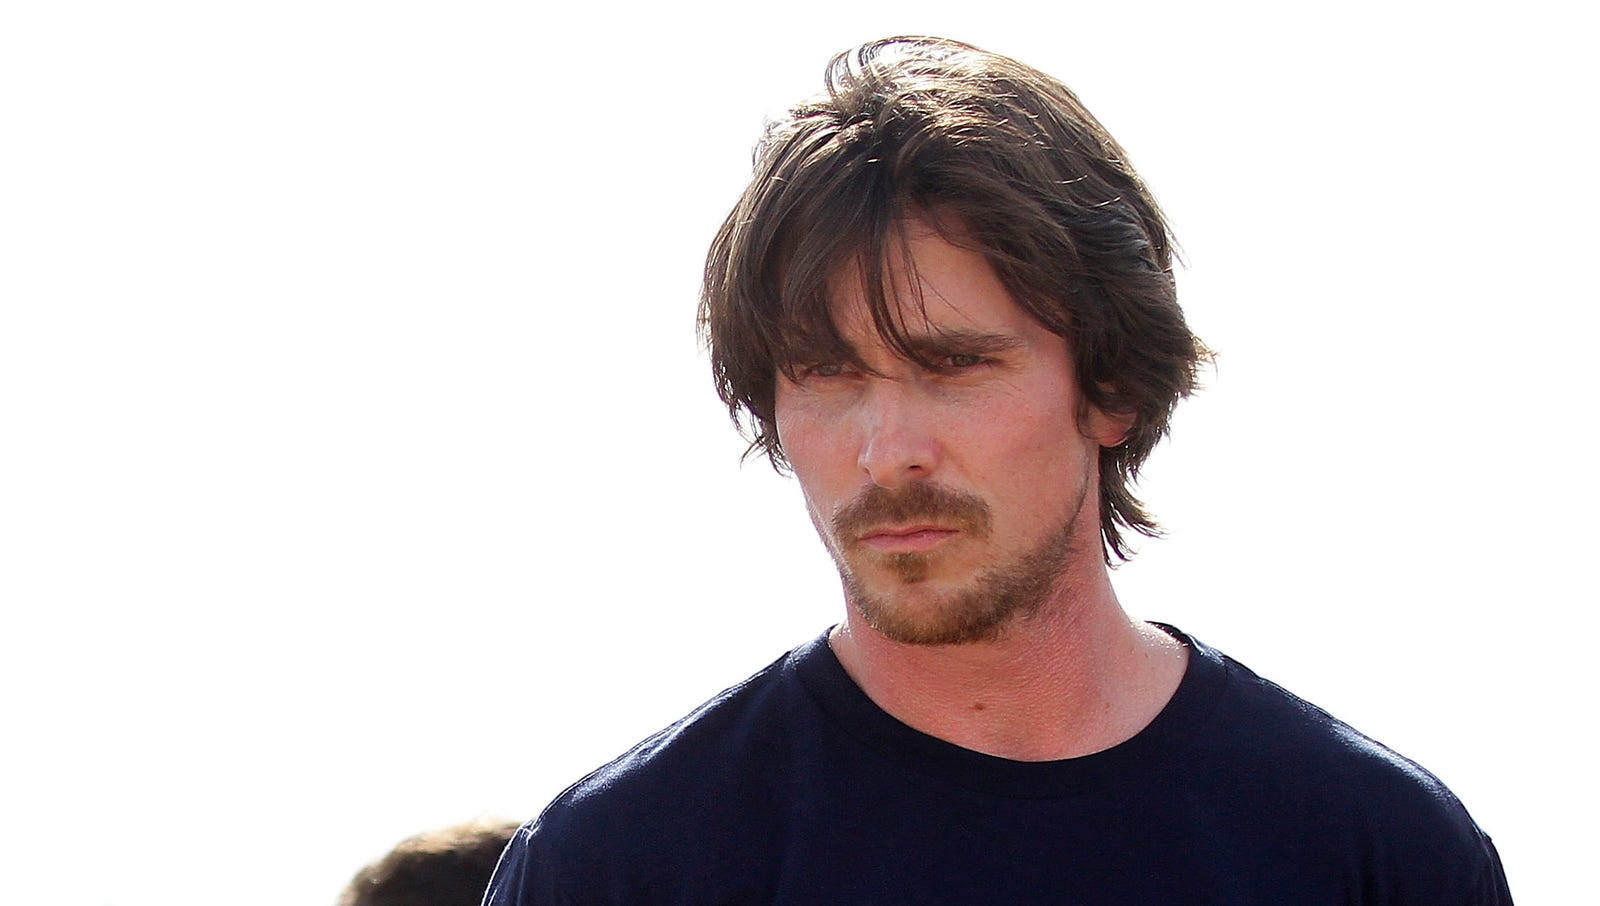 Christian Bale Visits Sikh Temple Victims